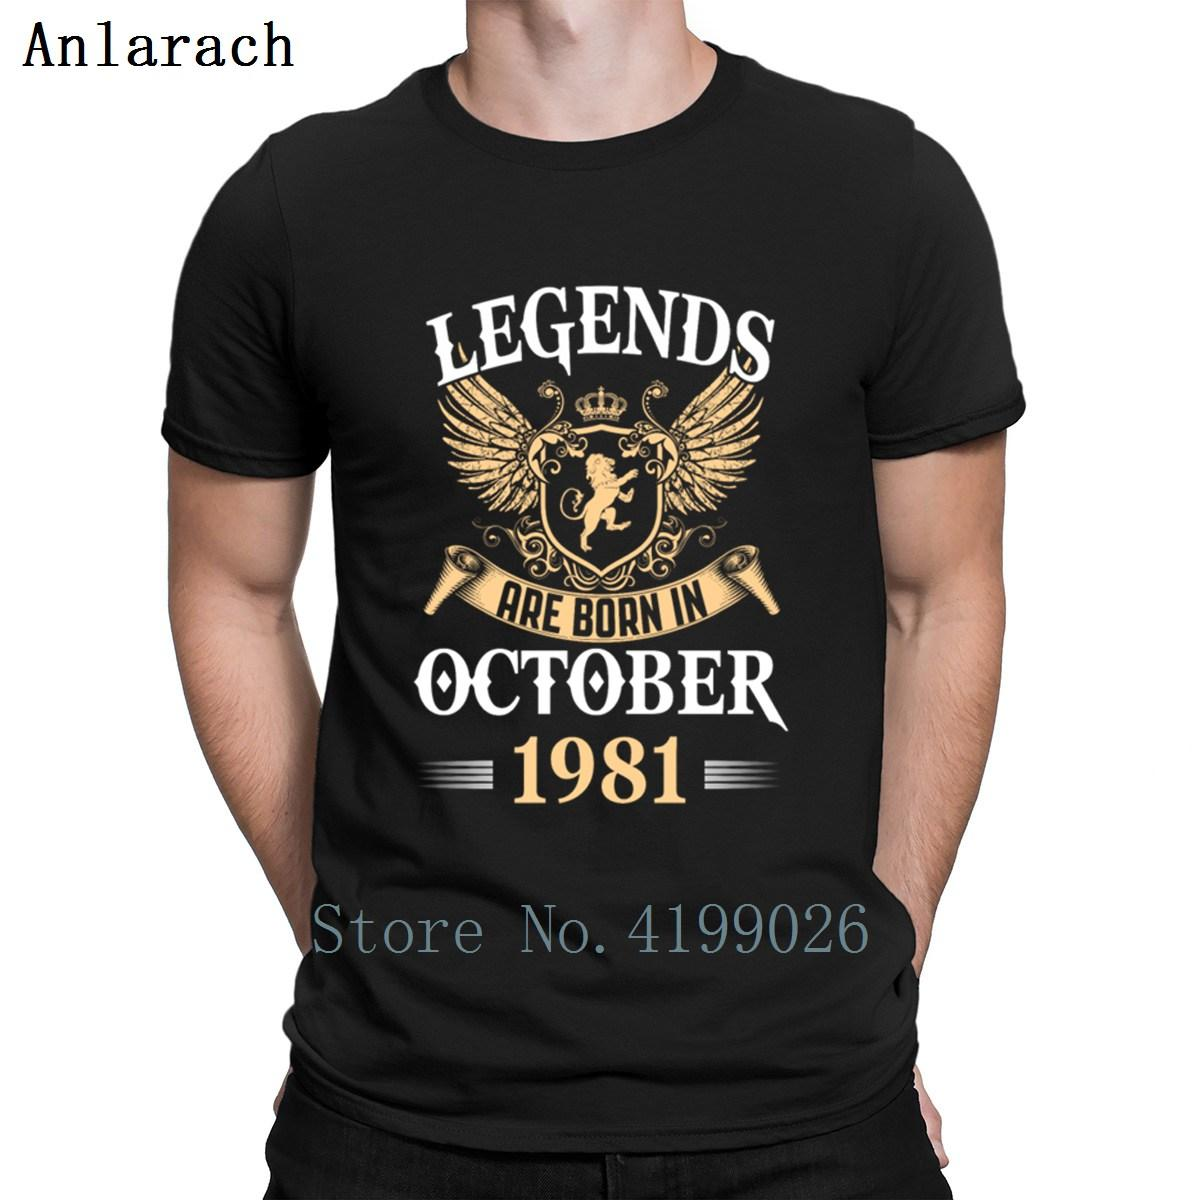 6408ea71 Legends Are Born In October 1981 T Shirt Homme Hip Hop Gift S 3xl Tshirt For  Men Summer Trend Character Cotton New Style Shop For T Shirts Shop For T  Shirts ...